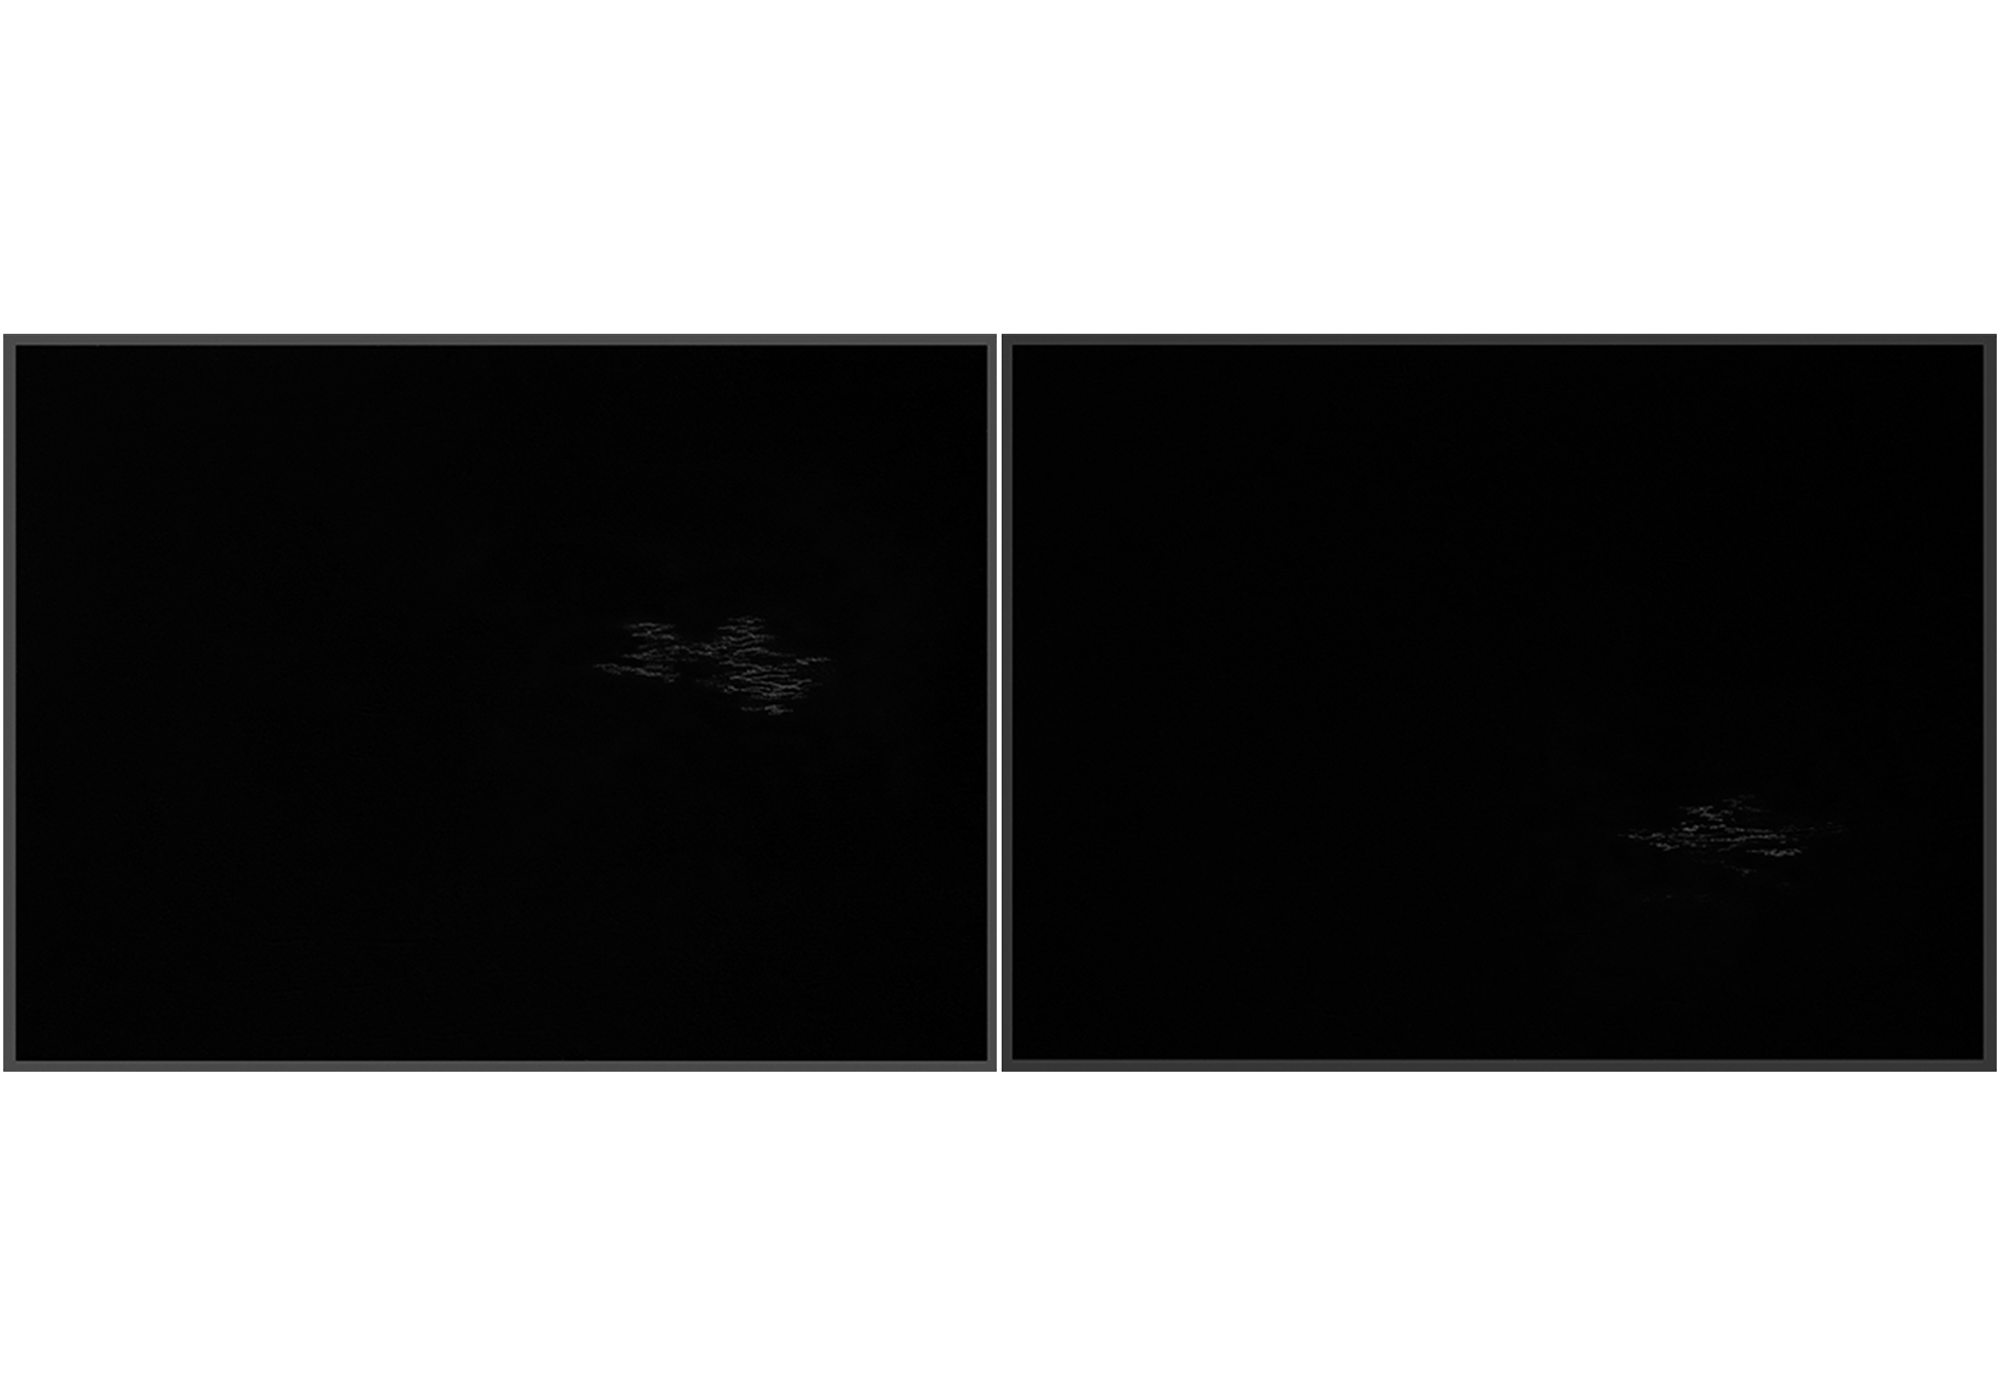 Lala Rukh  Nightscape II (1, 2 - diptych) 2011 Graphite on carbon paper 20.32 x 26.67 cm each